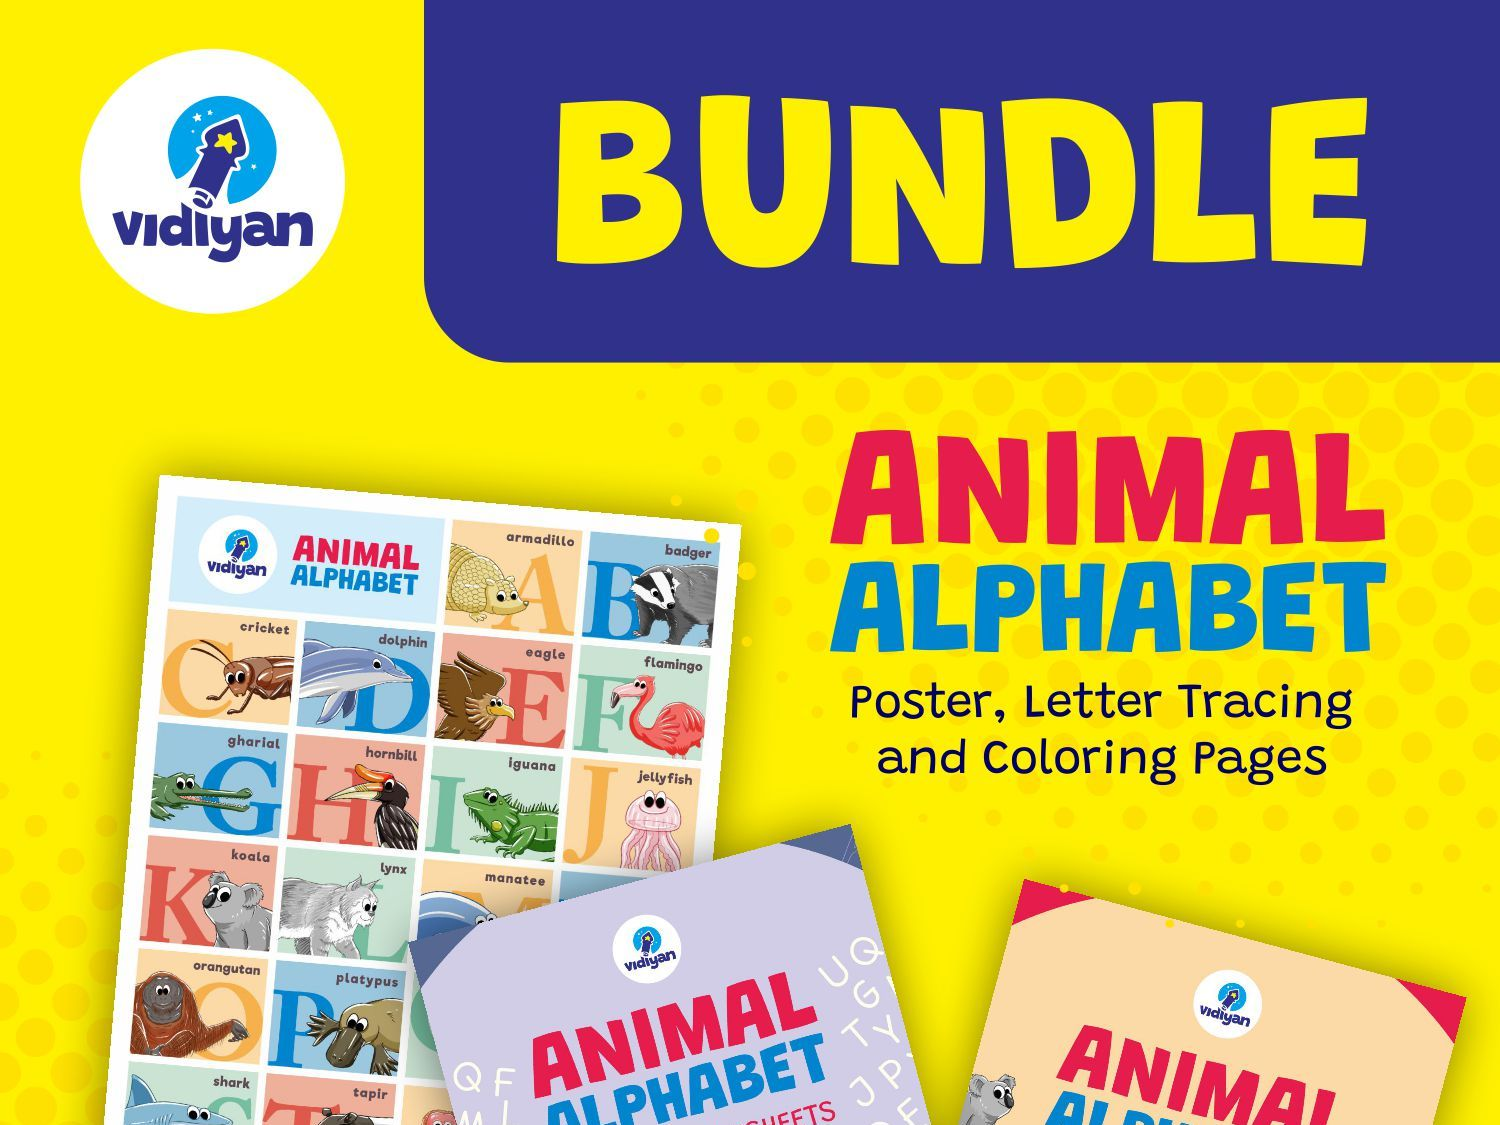 Animal Alphabet Bundle - Poster, Coloring Pages and Letter Tracing Worksheets